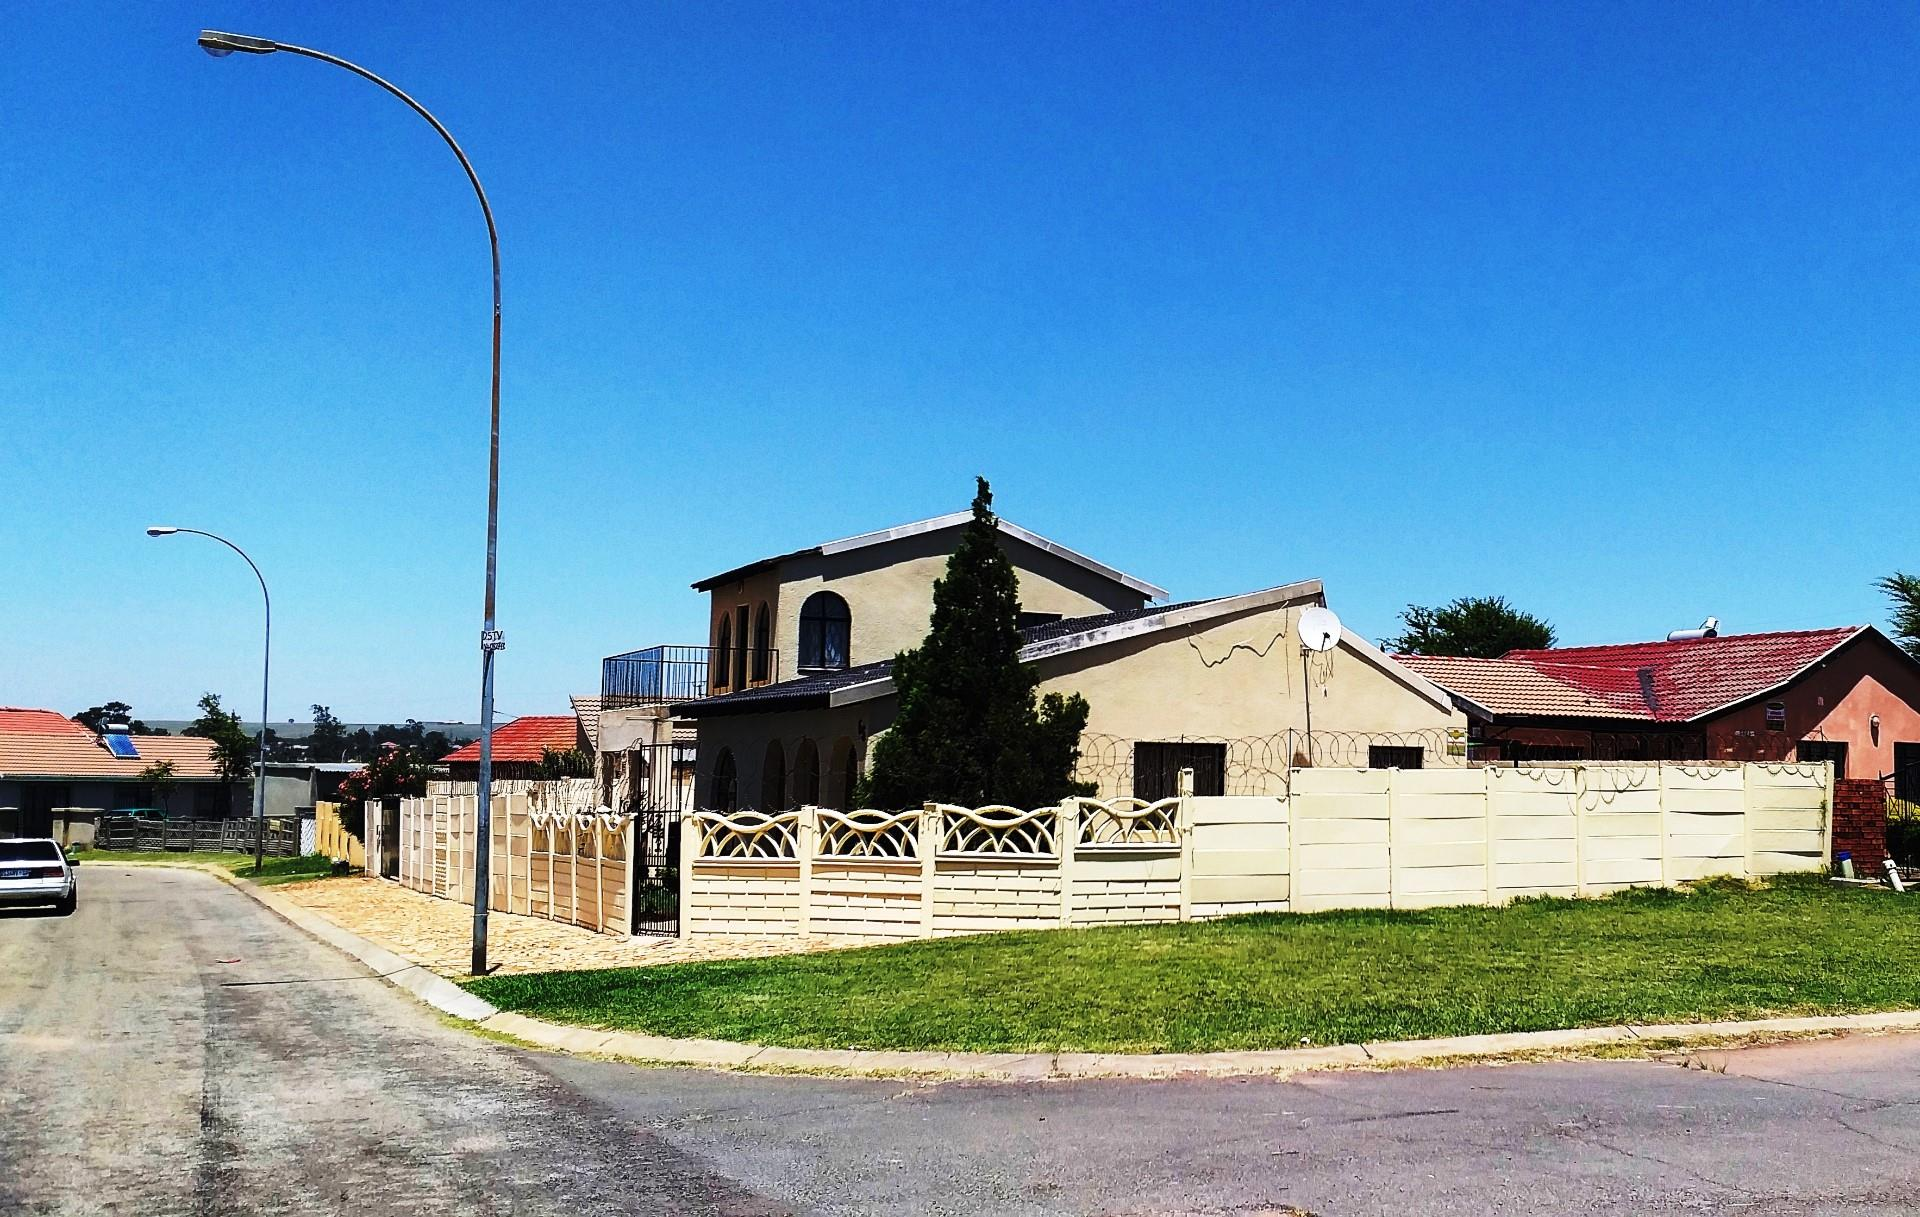 4 Bedroom House For Sale in Lenasia South